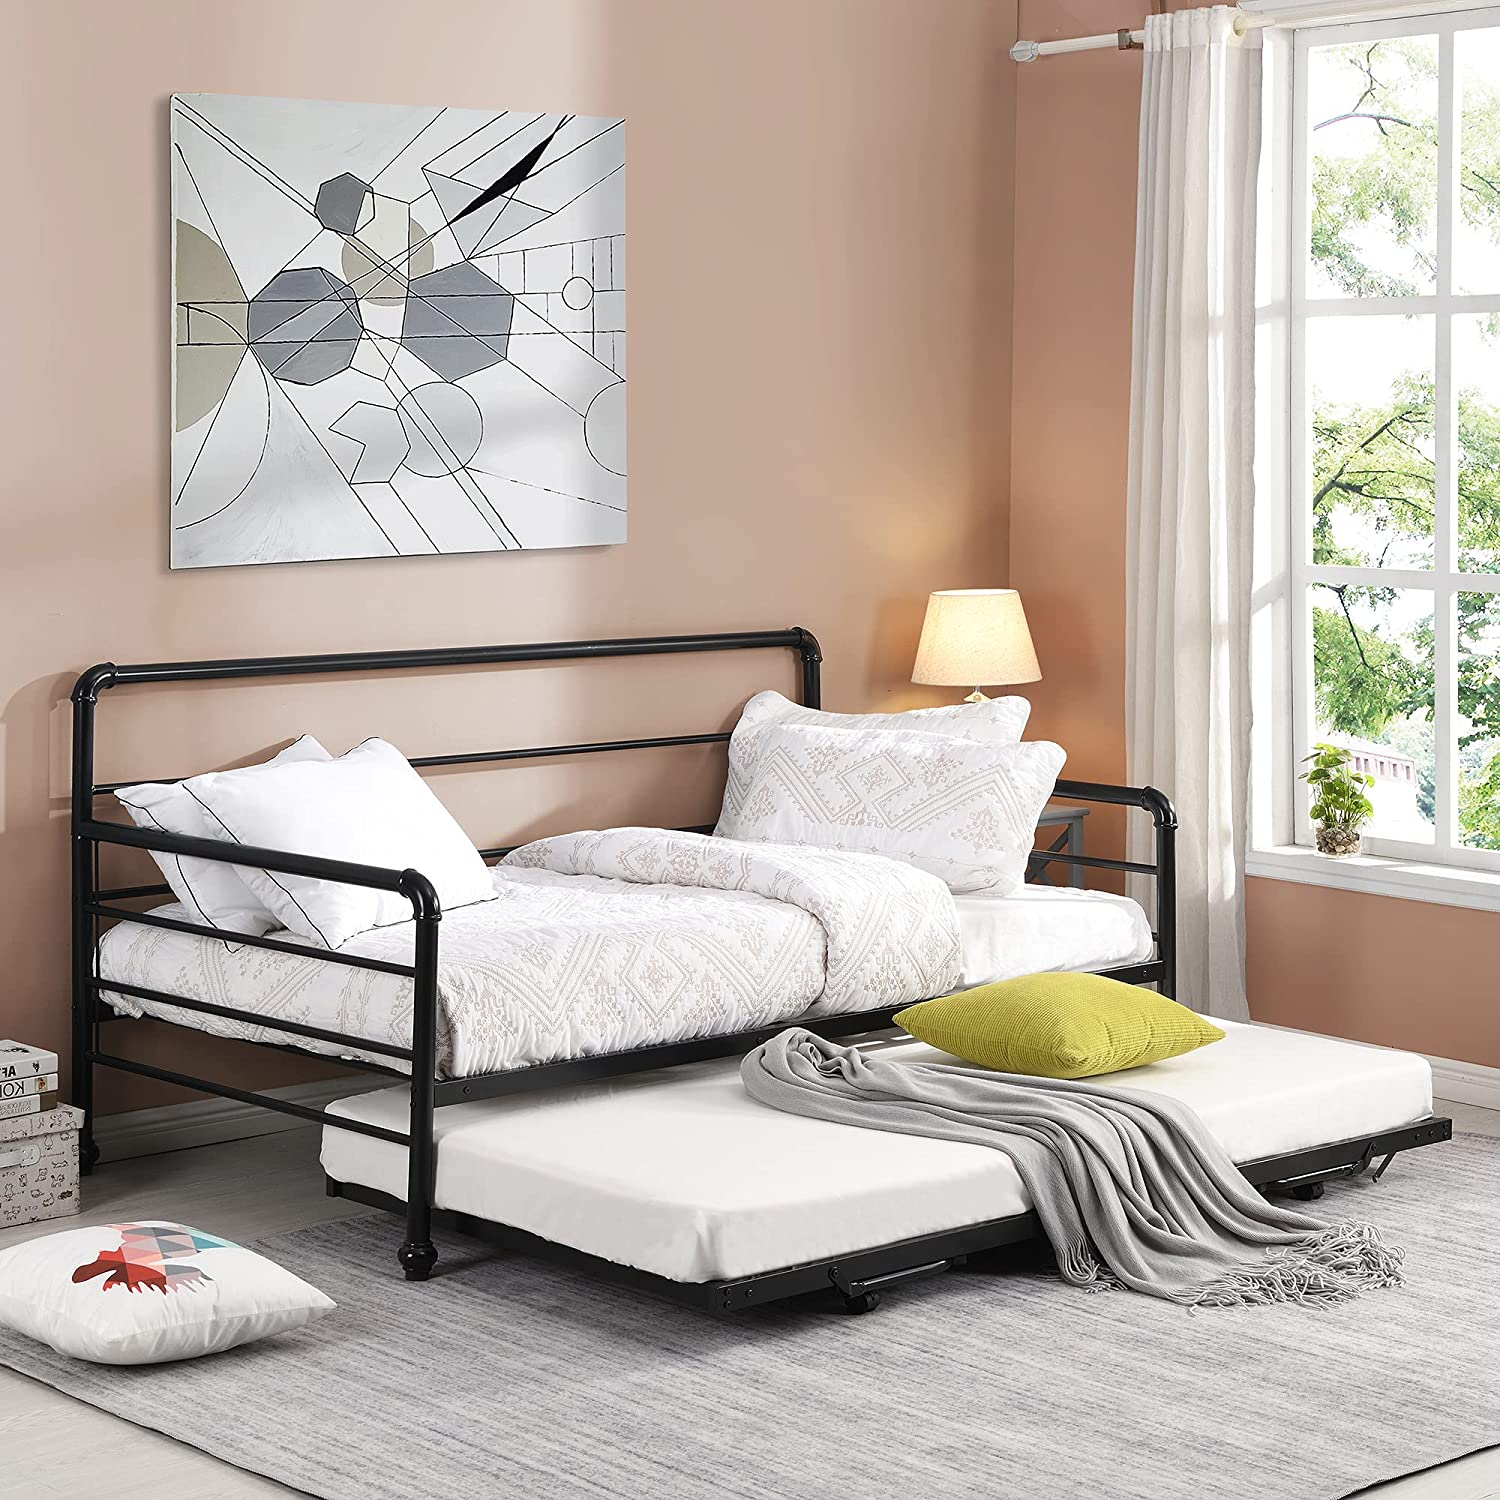 P 新商品!新型 PURLOVE Twin Daybed Adjustable Frame Trundle ランキングTOP5 with